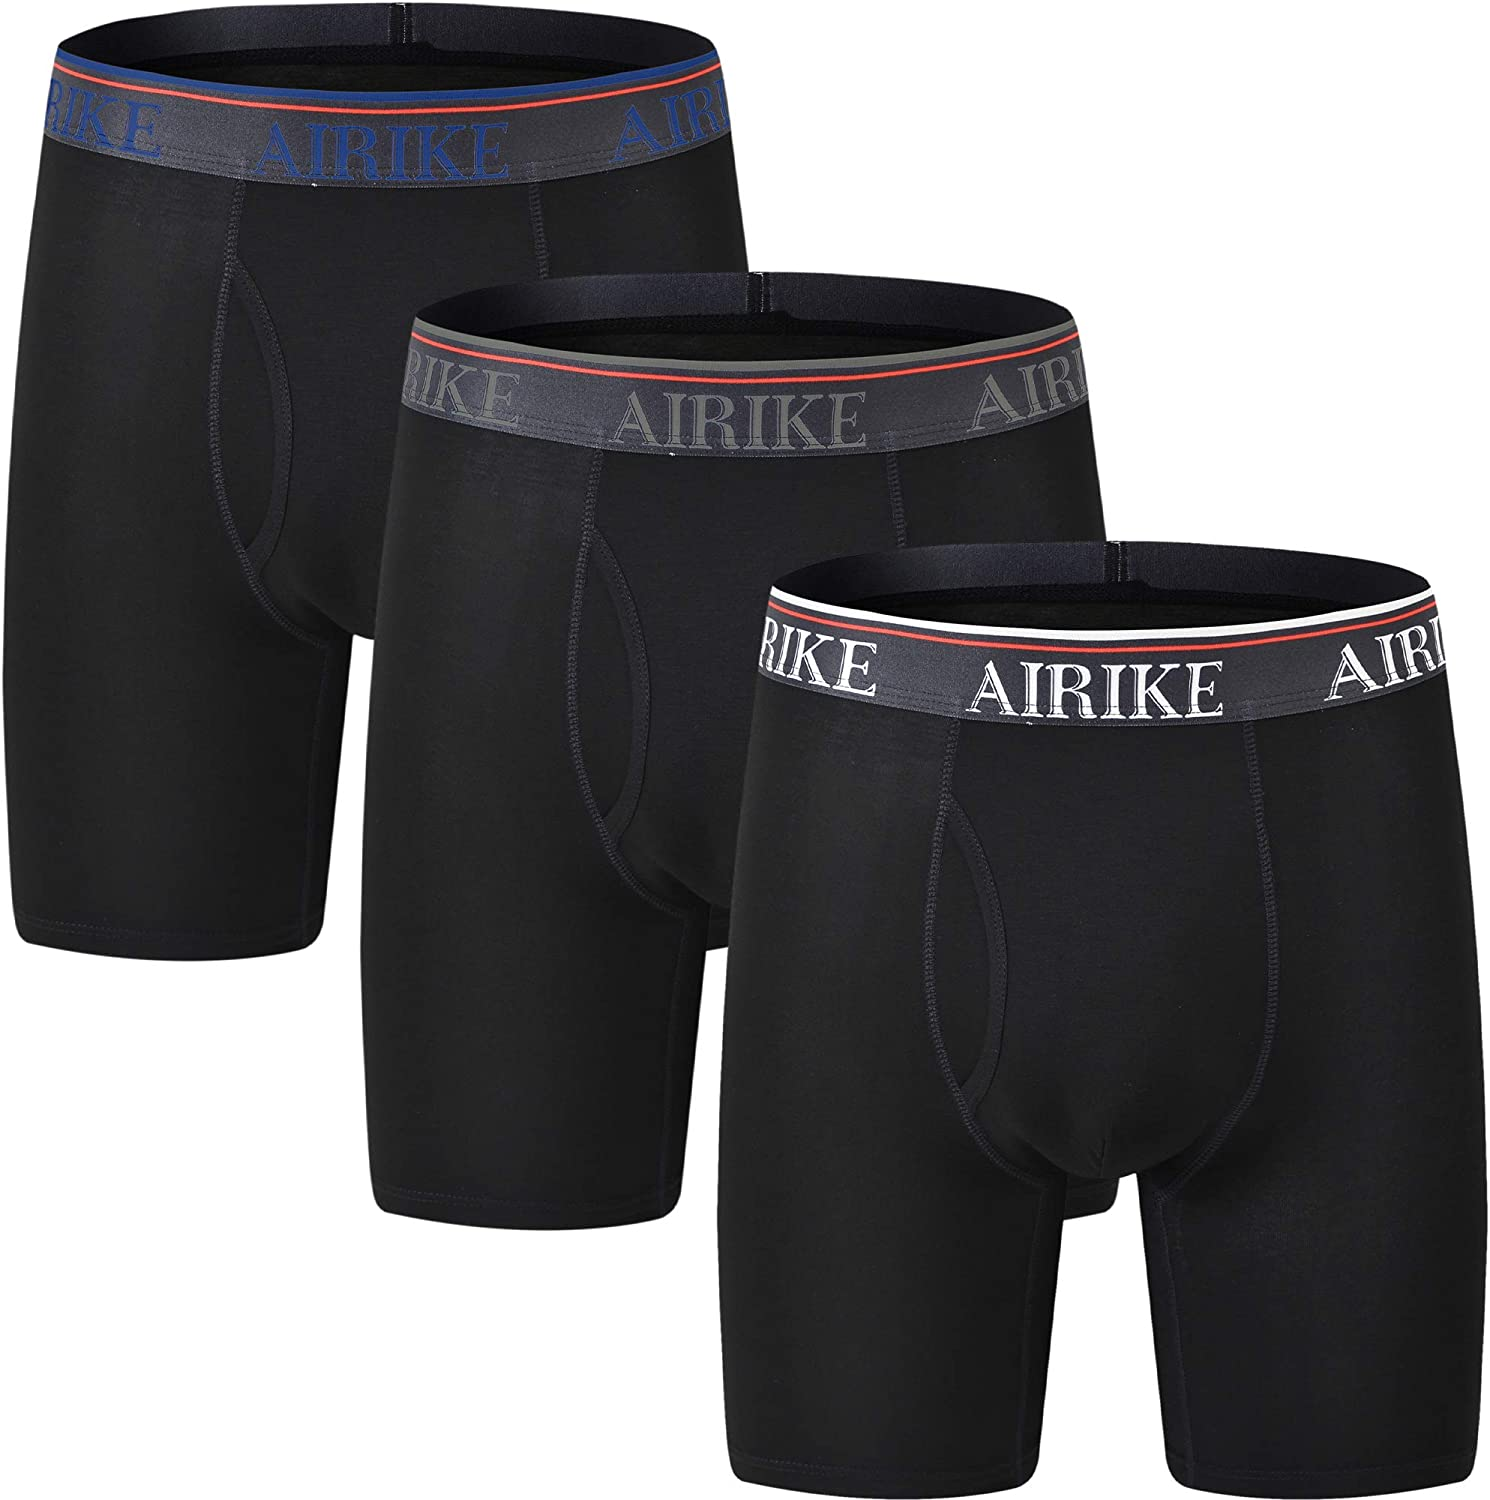 2021 model AjezMax Mens Boxer Briefs Long Leg Big Underwear and Regular discount Tall Pack S